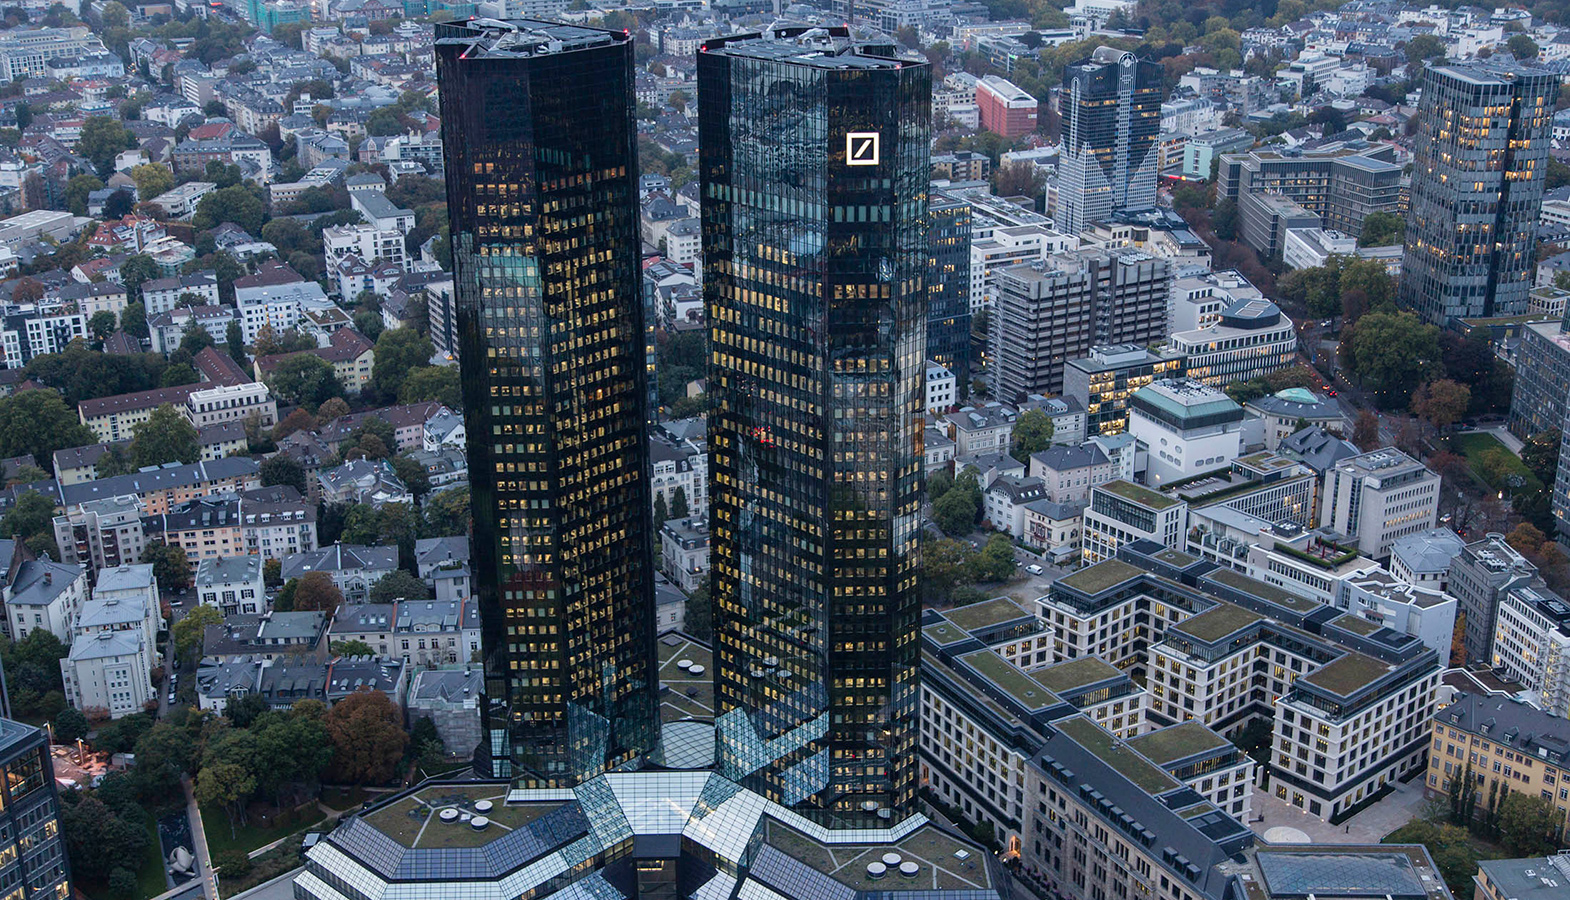 Deutsche Bank Shares Fell 6% On Reports Of Suspicious Transactions